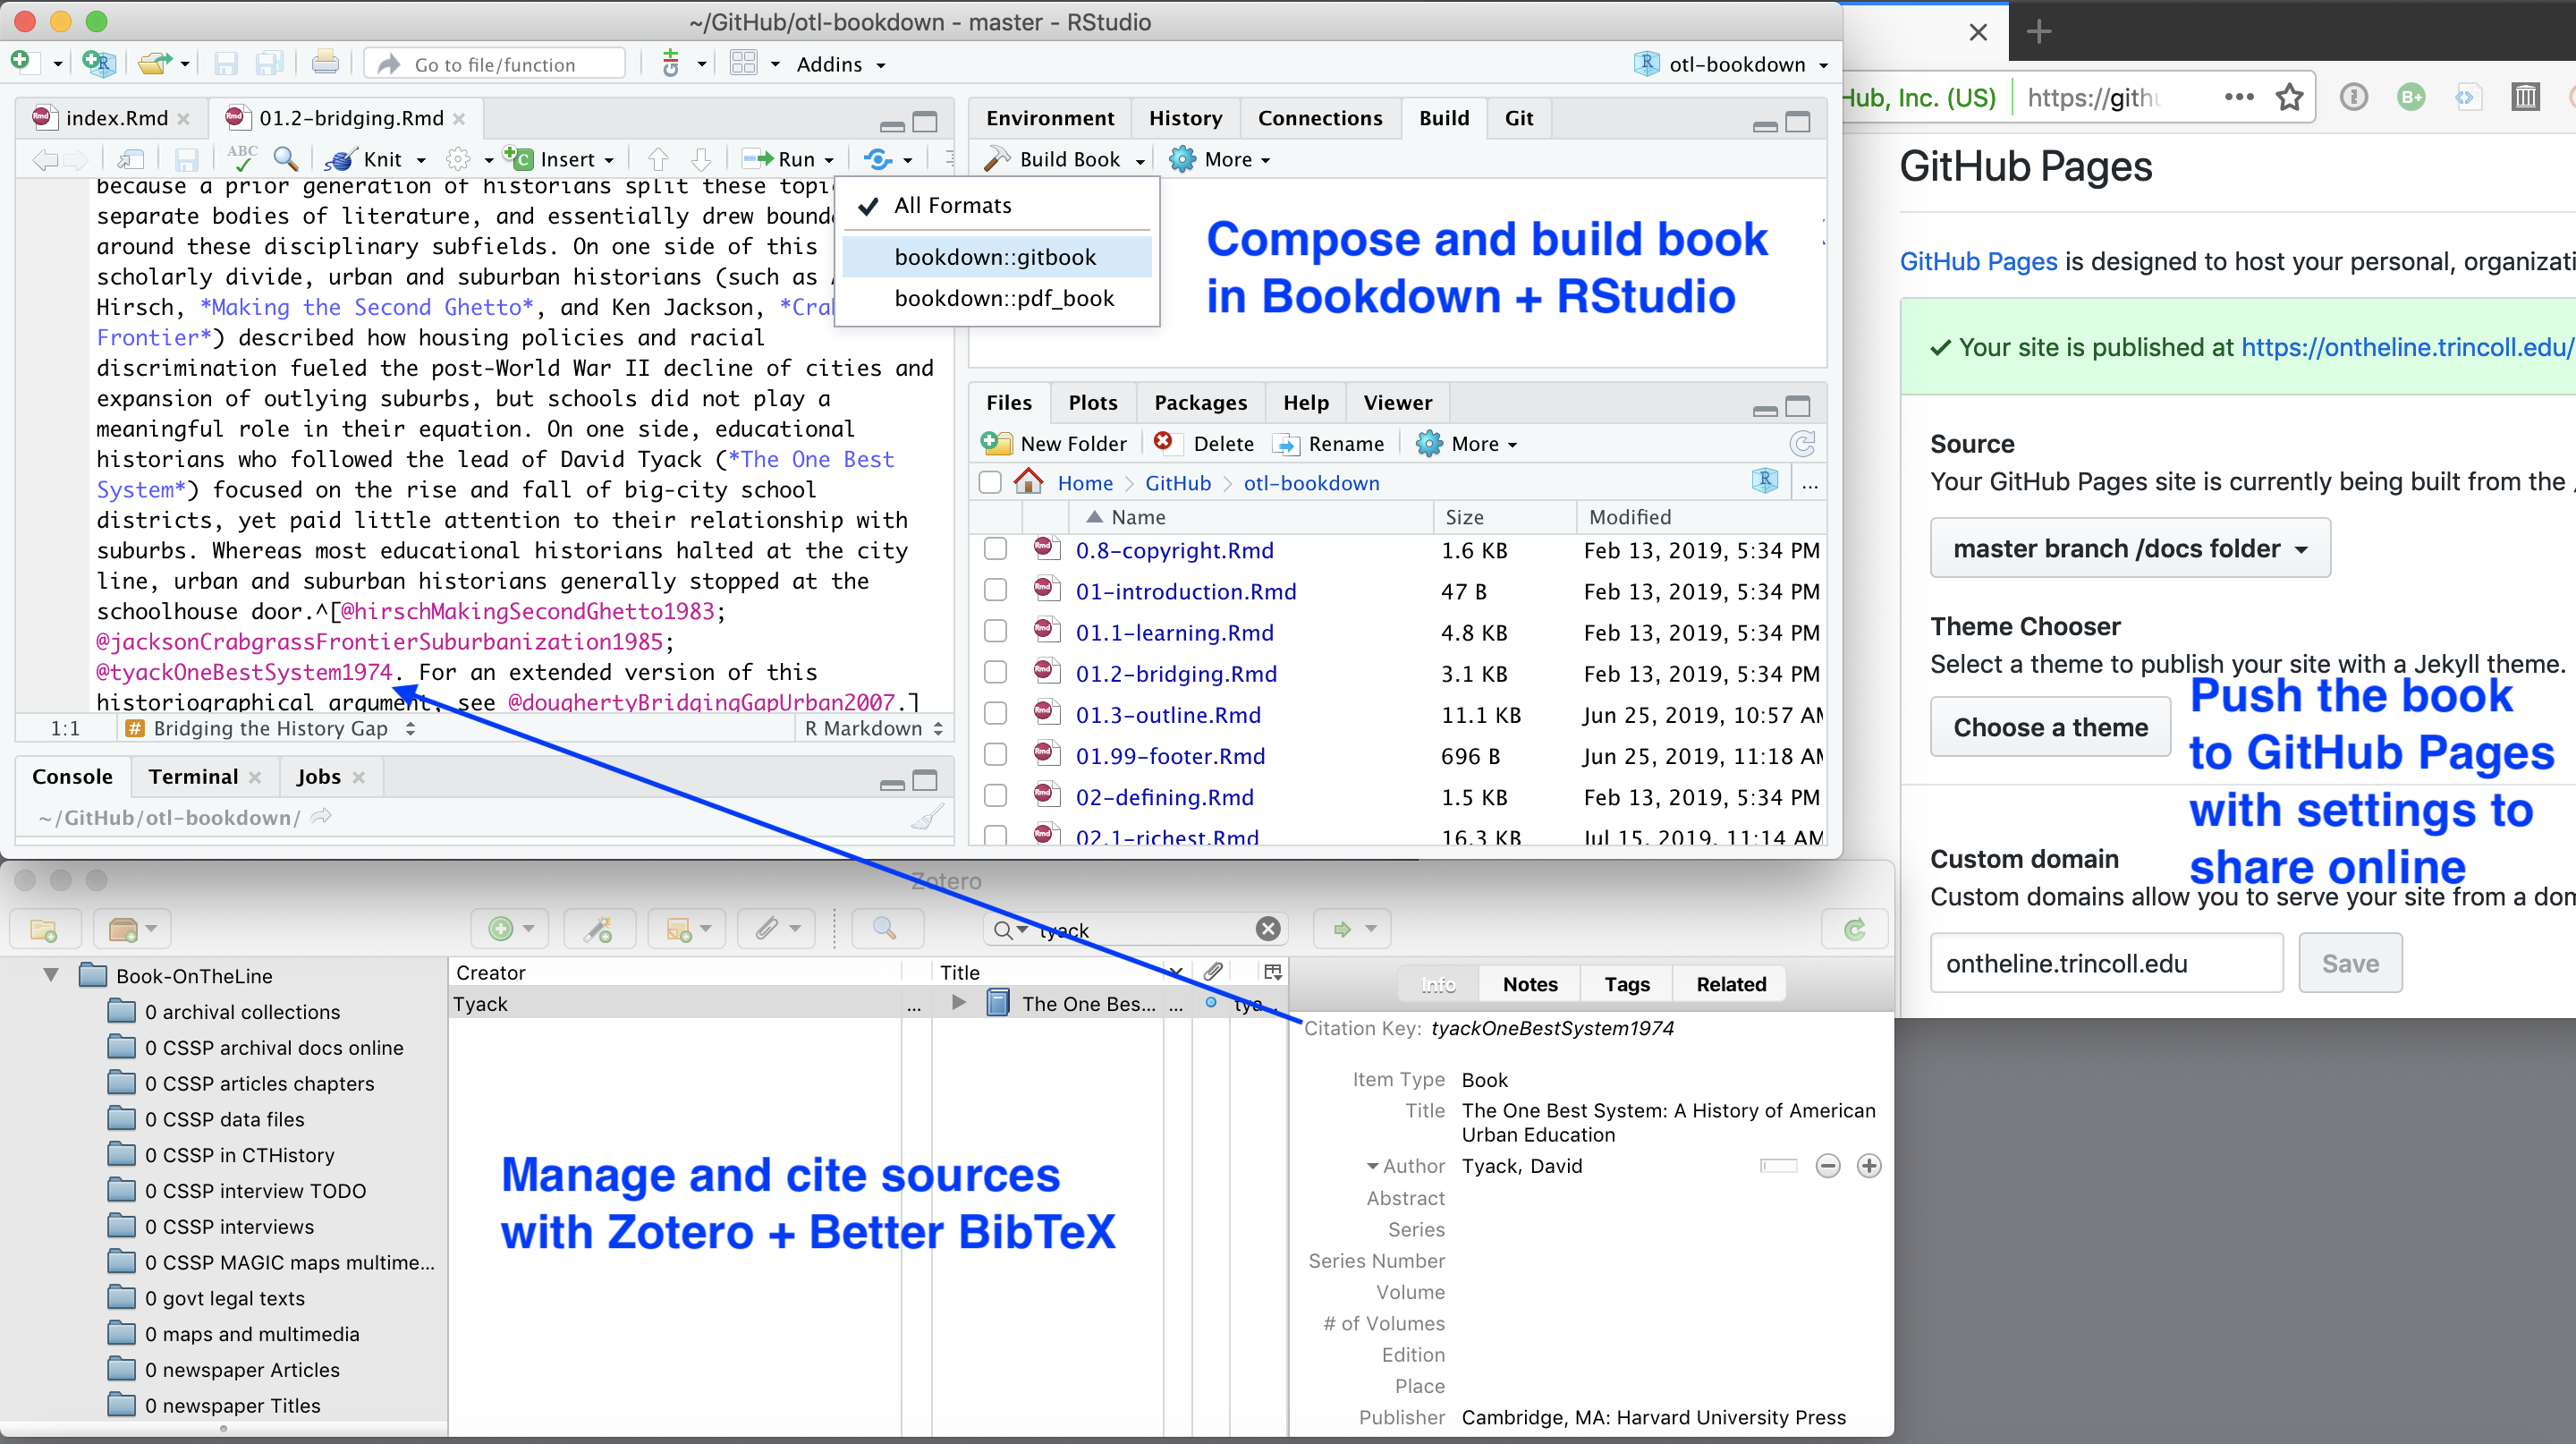 Workflow on a Mac desktop: Compose the text in RStudio and build books with Bookdown (top left), manage sources and insert citation keys with Zotero + BetterBibTex (bottom left), push book products to your GitHub repository to host online (right).